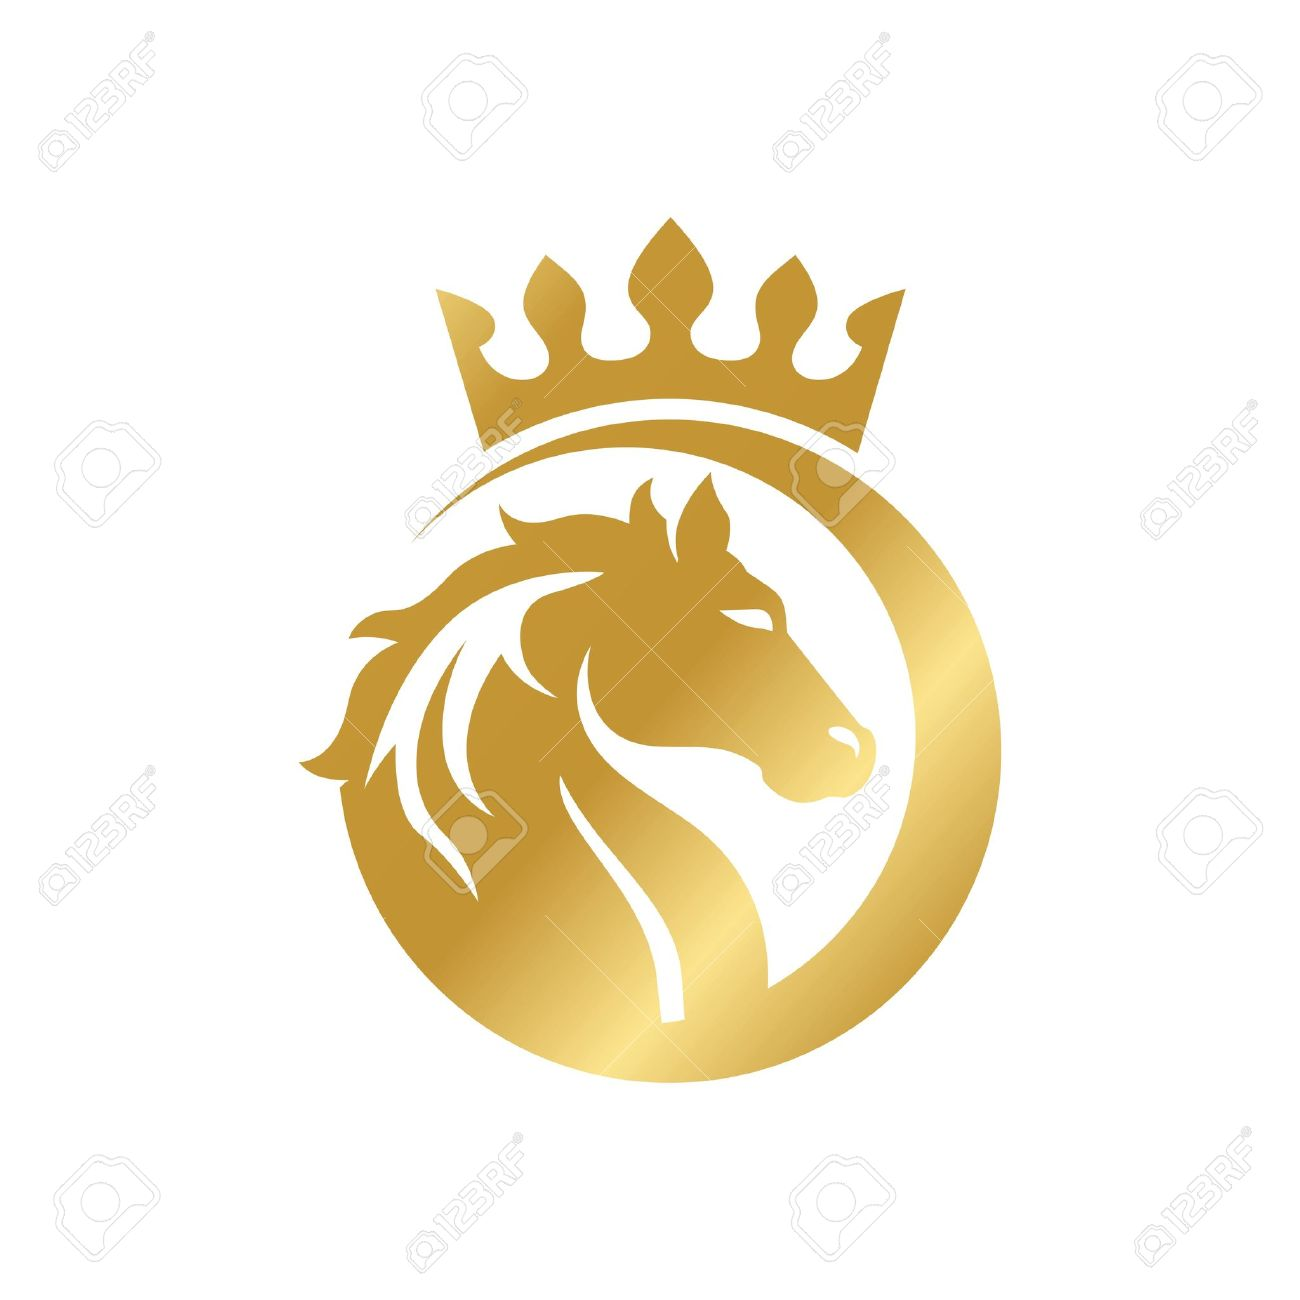 Horse Head Vector Stock Photos Royalty Free Horse Head Vector Images